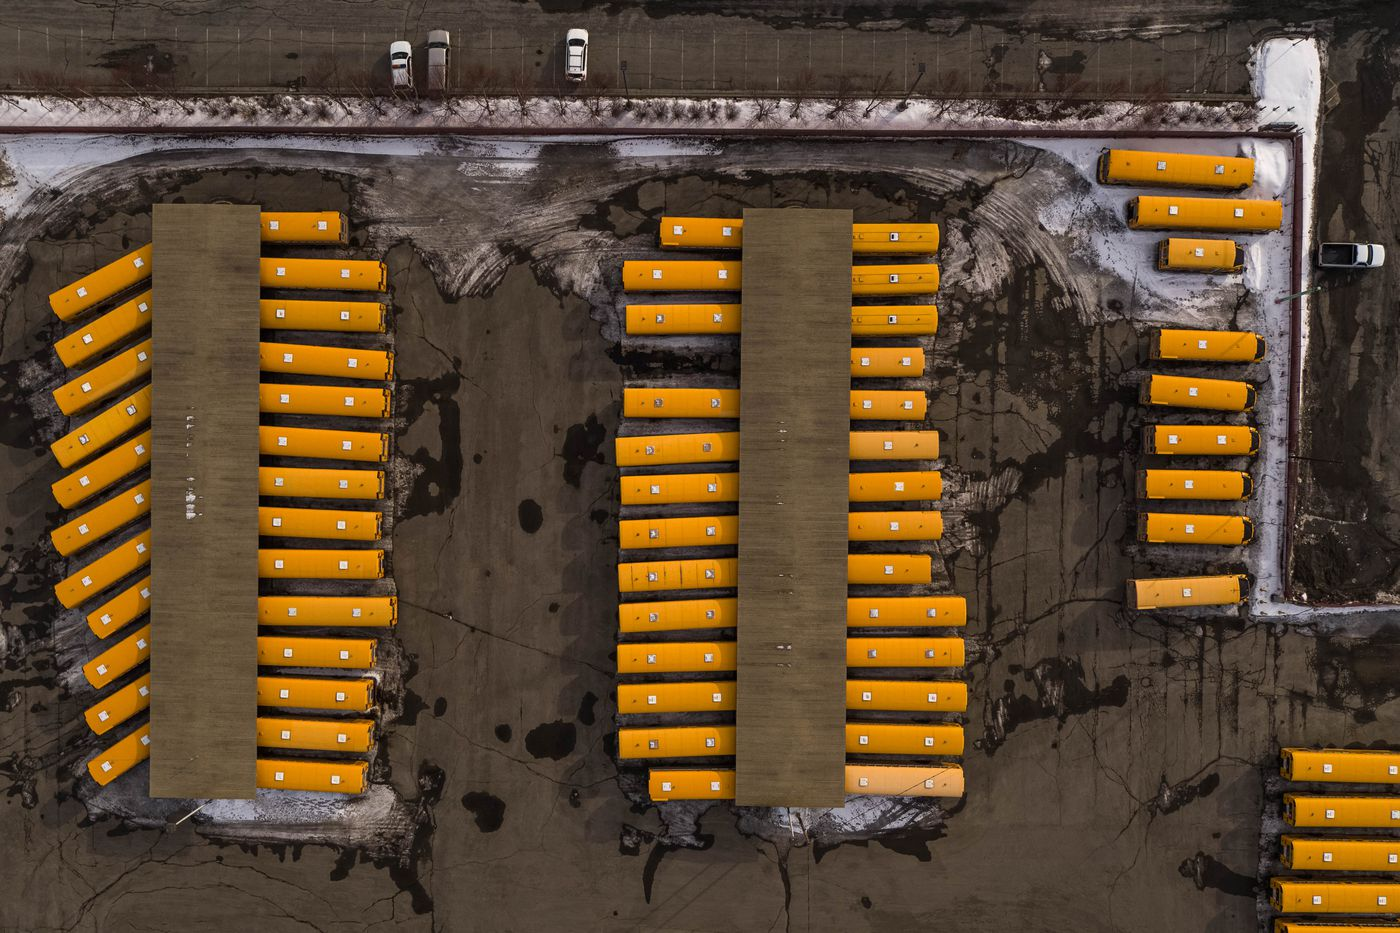 MARCH 27. School busses are parked at the Anchorage School District transportation center. Schools have been ordered temporarily closed due to the coronavirus pandemic. (Loren Holmes / ADN)